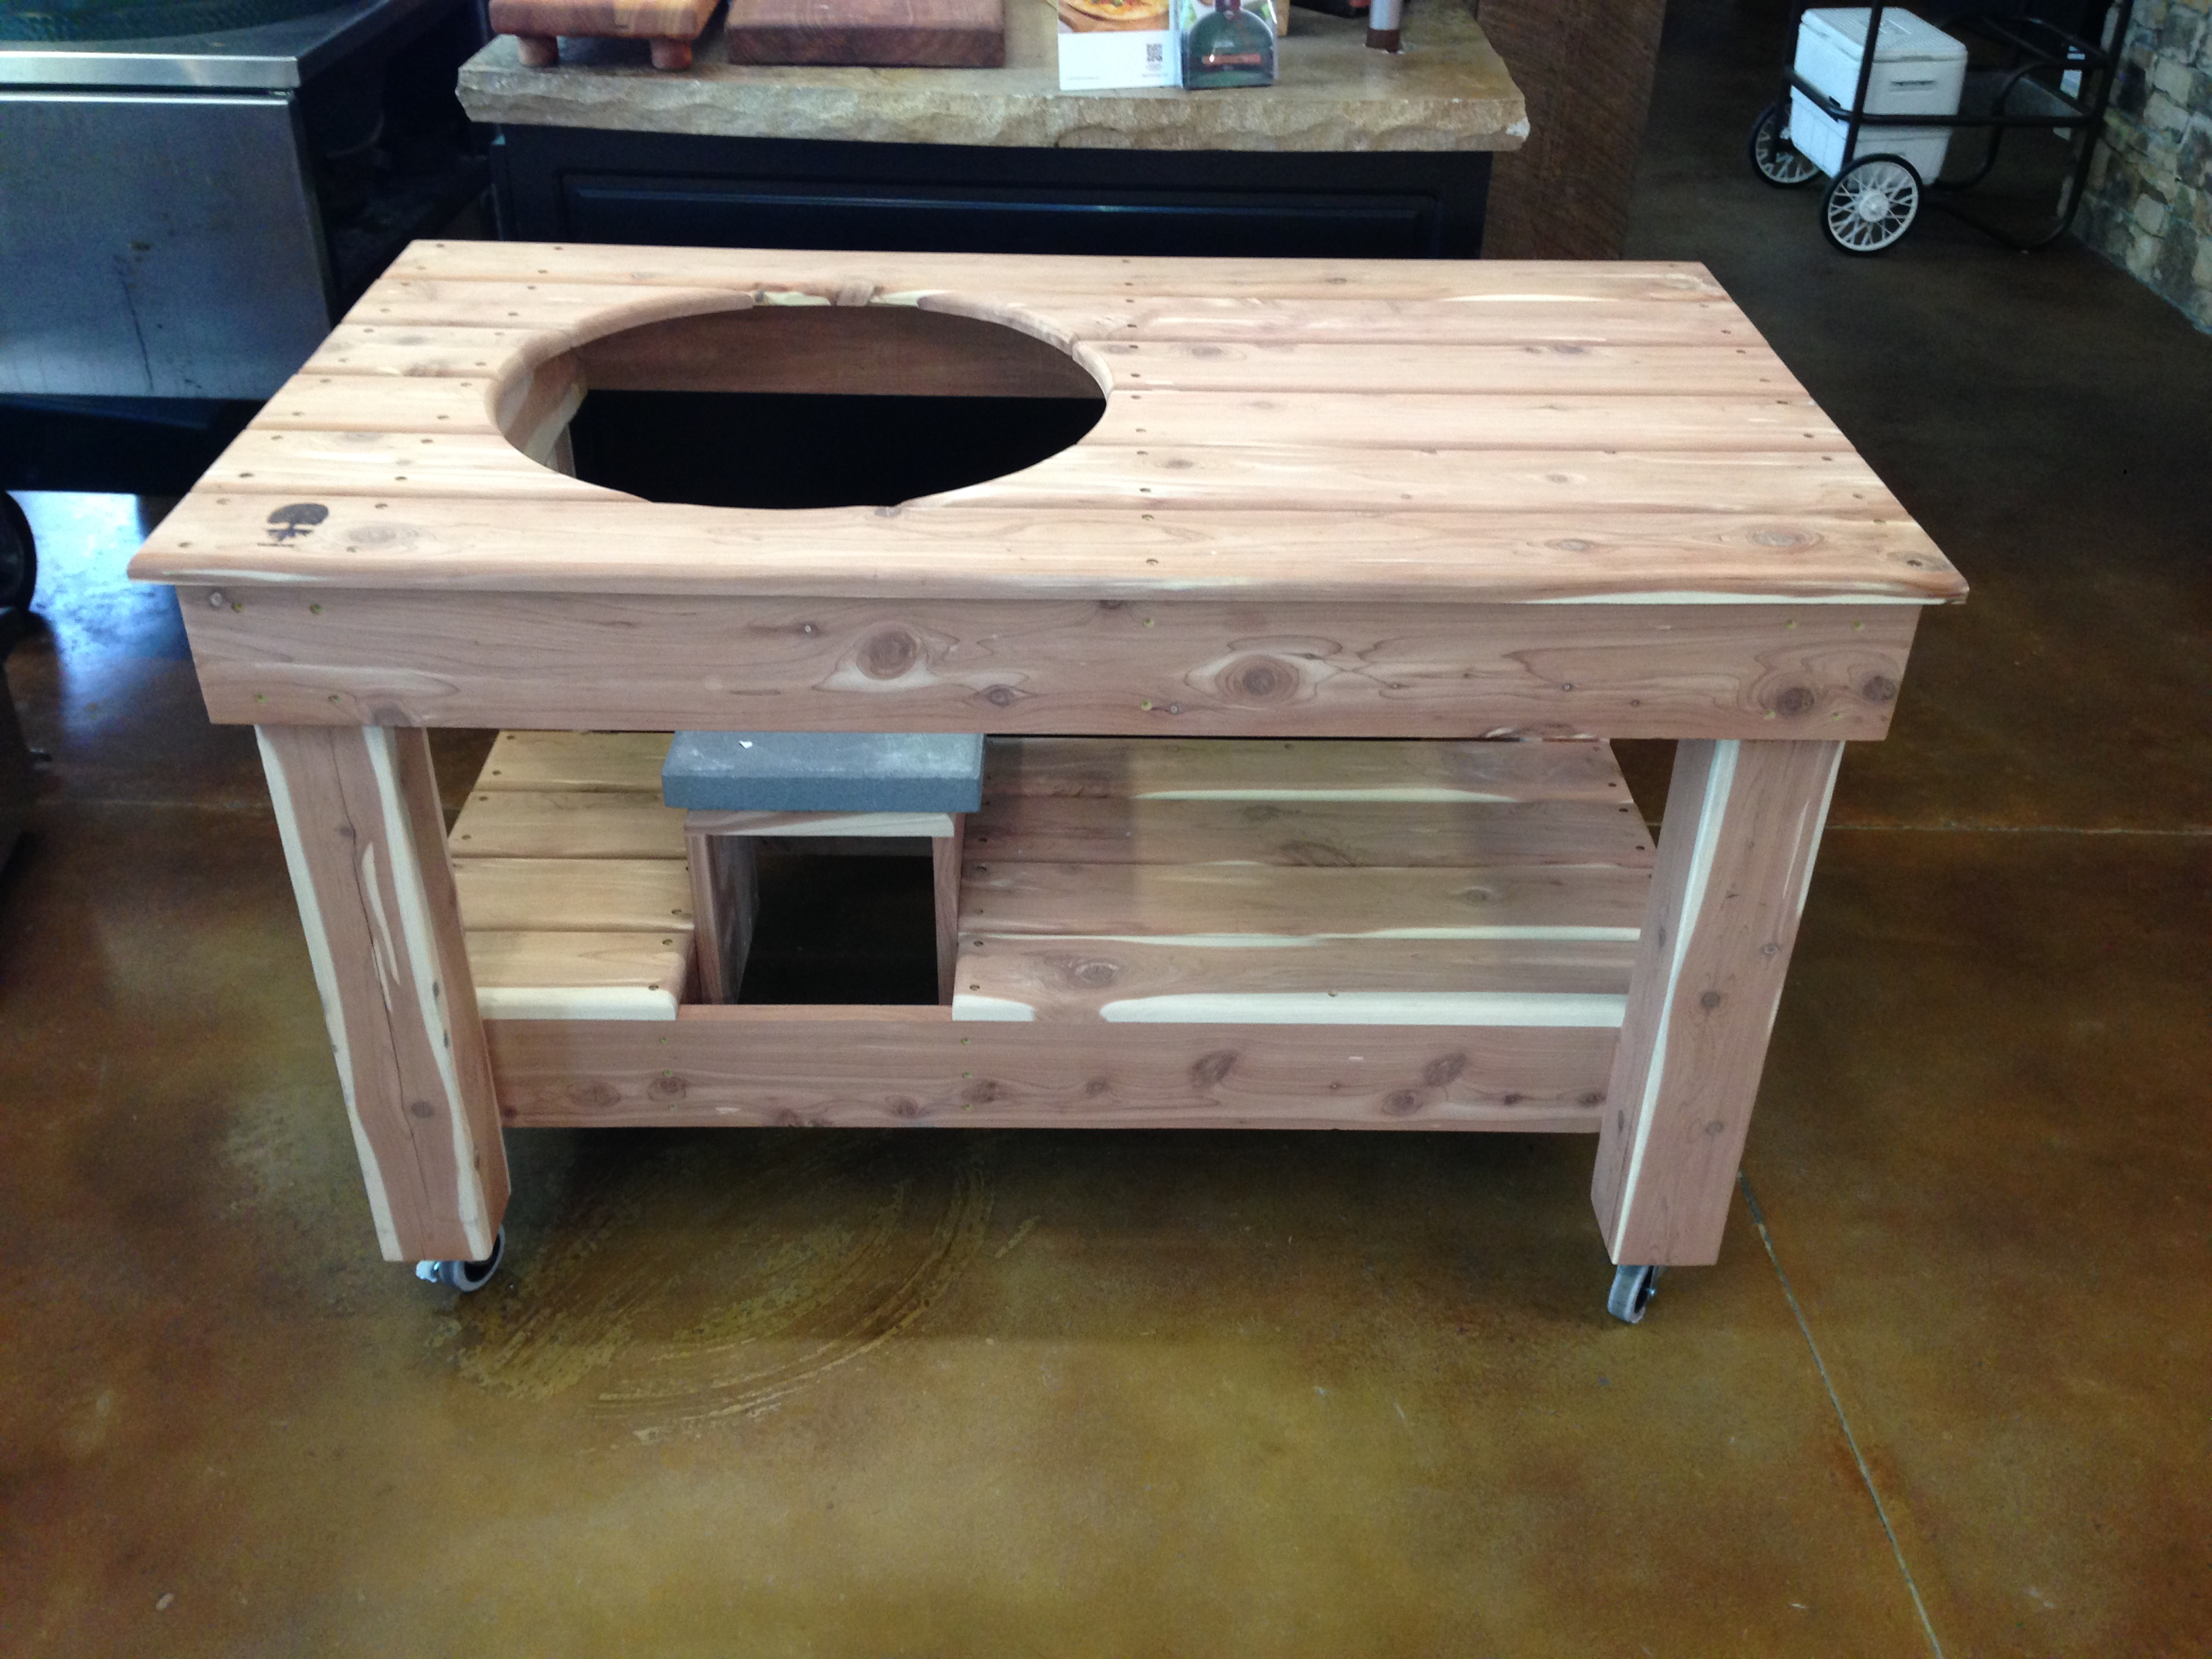 unfinished pine kitchen cabinets dinette sets taproot grill table - pt fireside outdoor kitchens